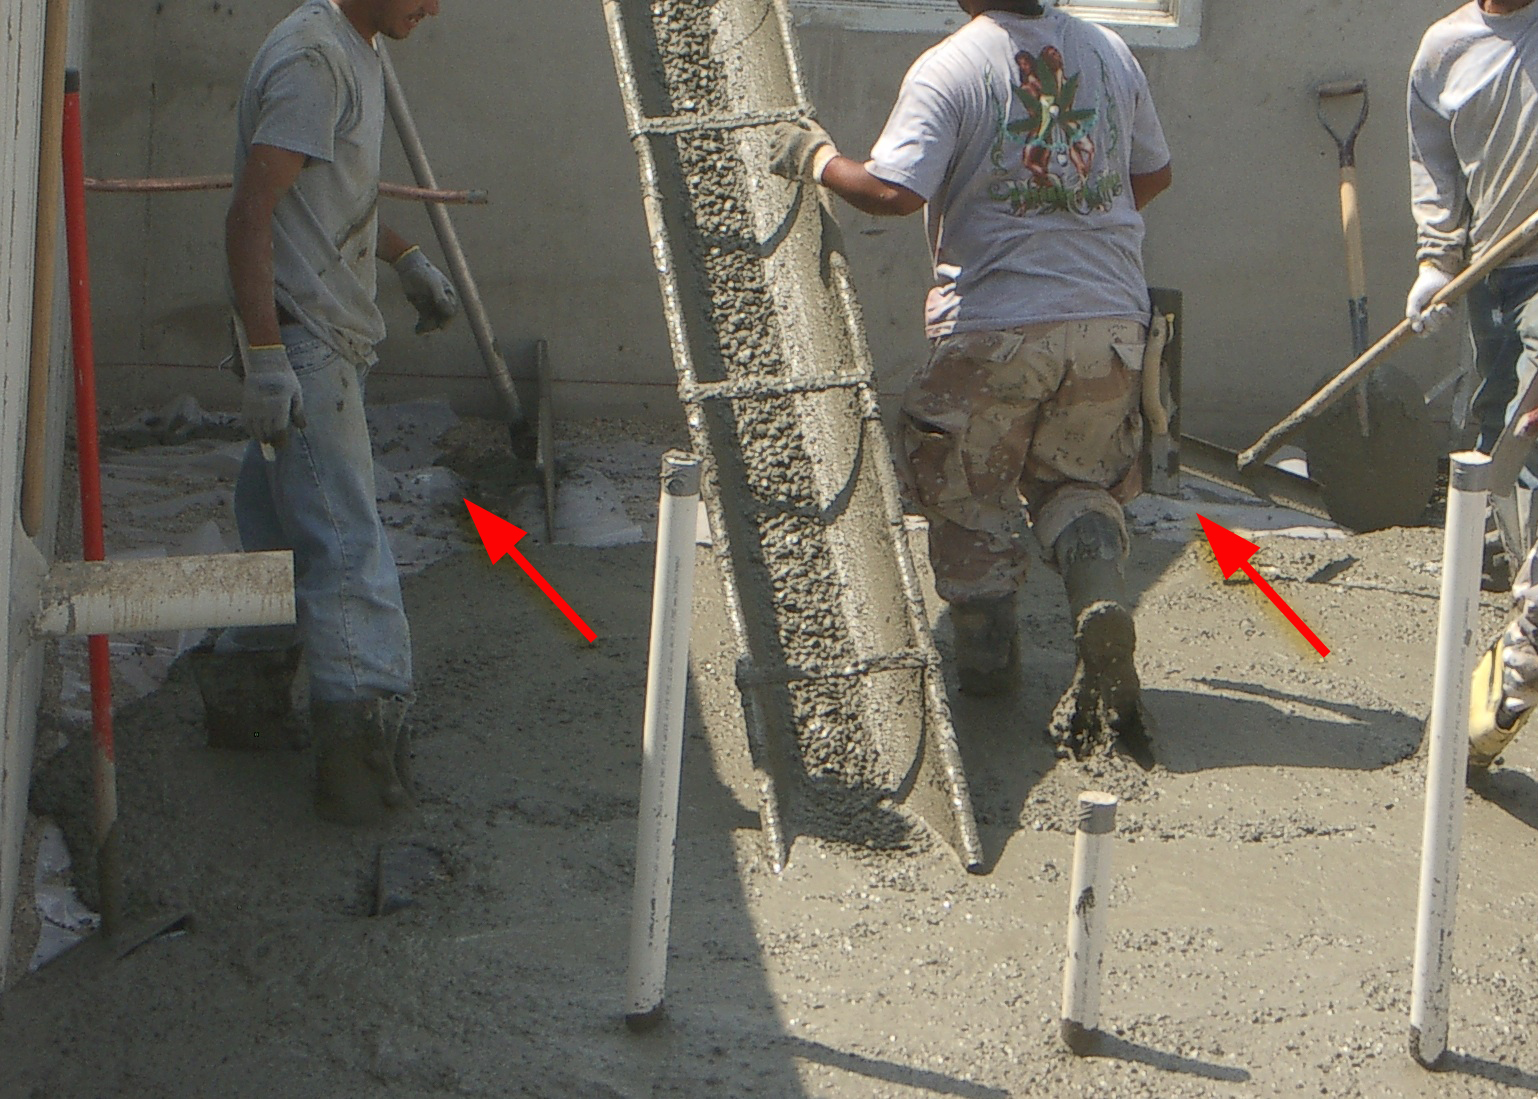 Here the polyethylene sheeting can still be seen as cement is poured to create the foundation. Care must be taken when walking on the sheeting to ensure it does not tear or pull apart at the seams